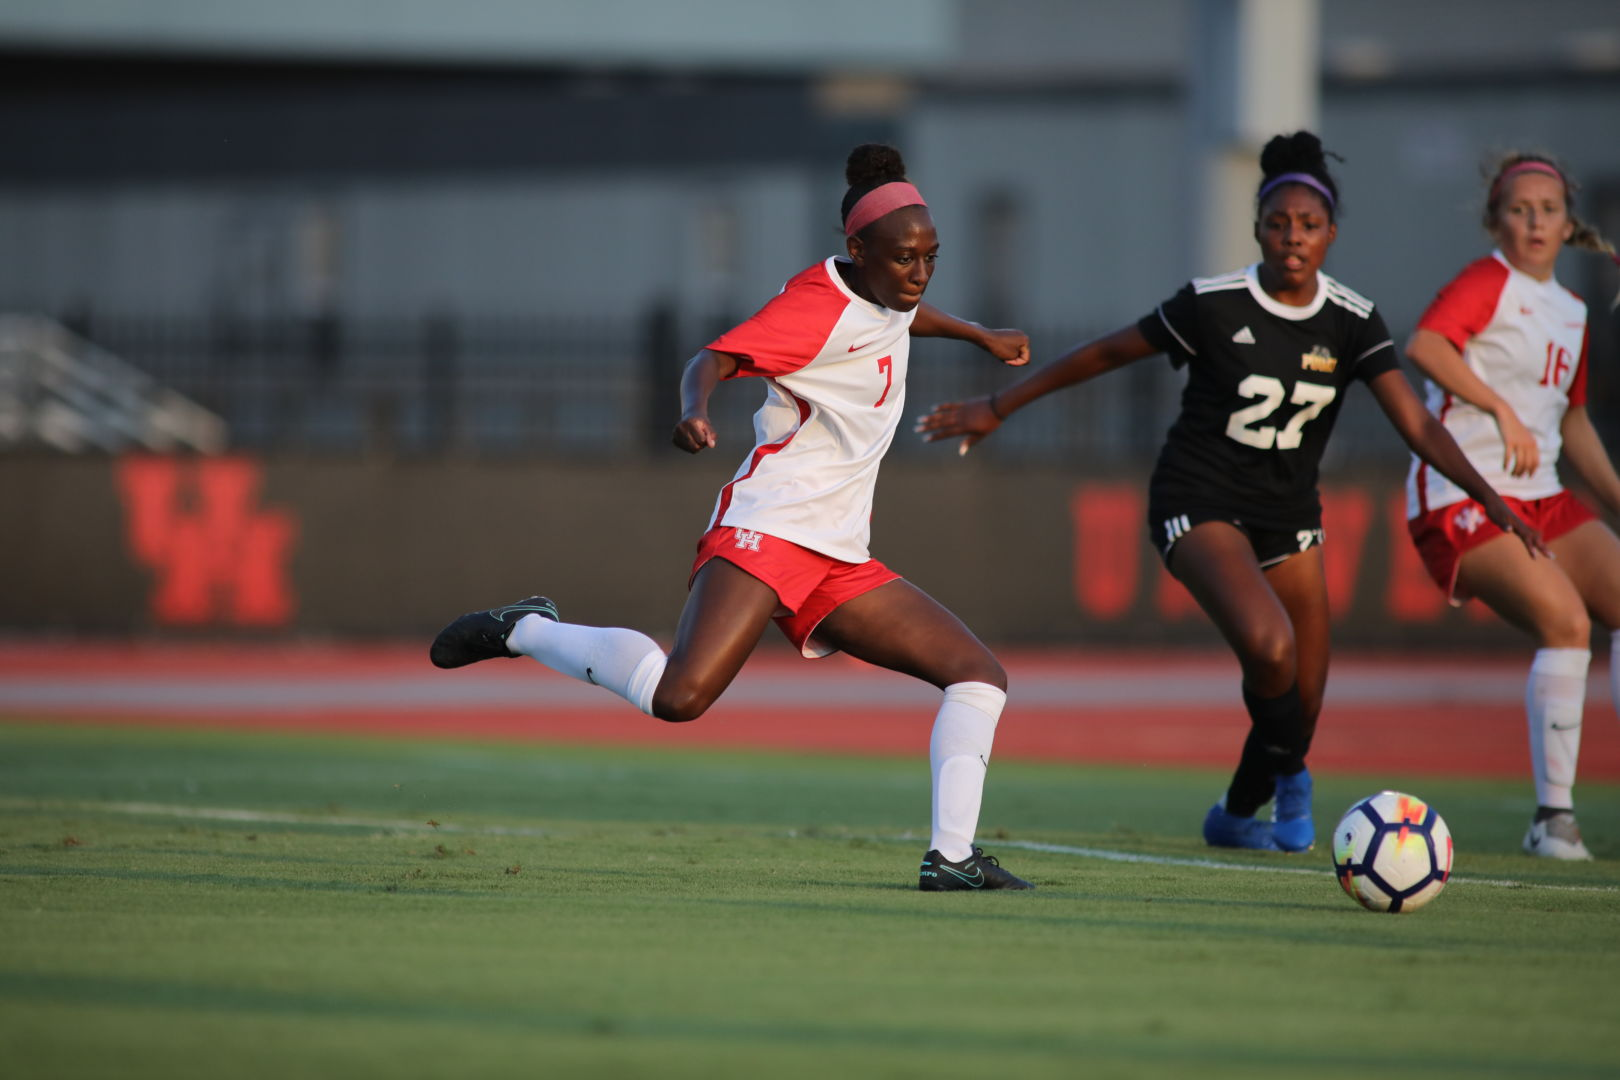 Senior forward Desiree Bowen scored Houston's second goal to put the Cougars up 2-0 in the first half. | File photo